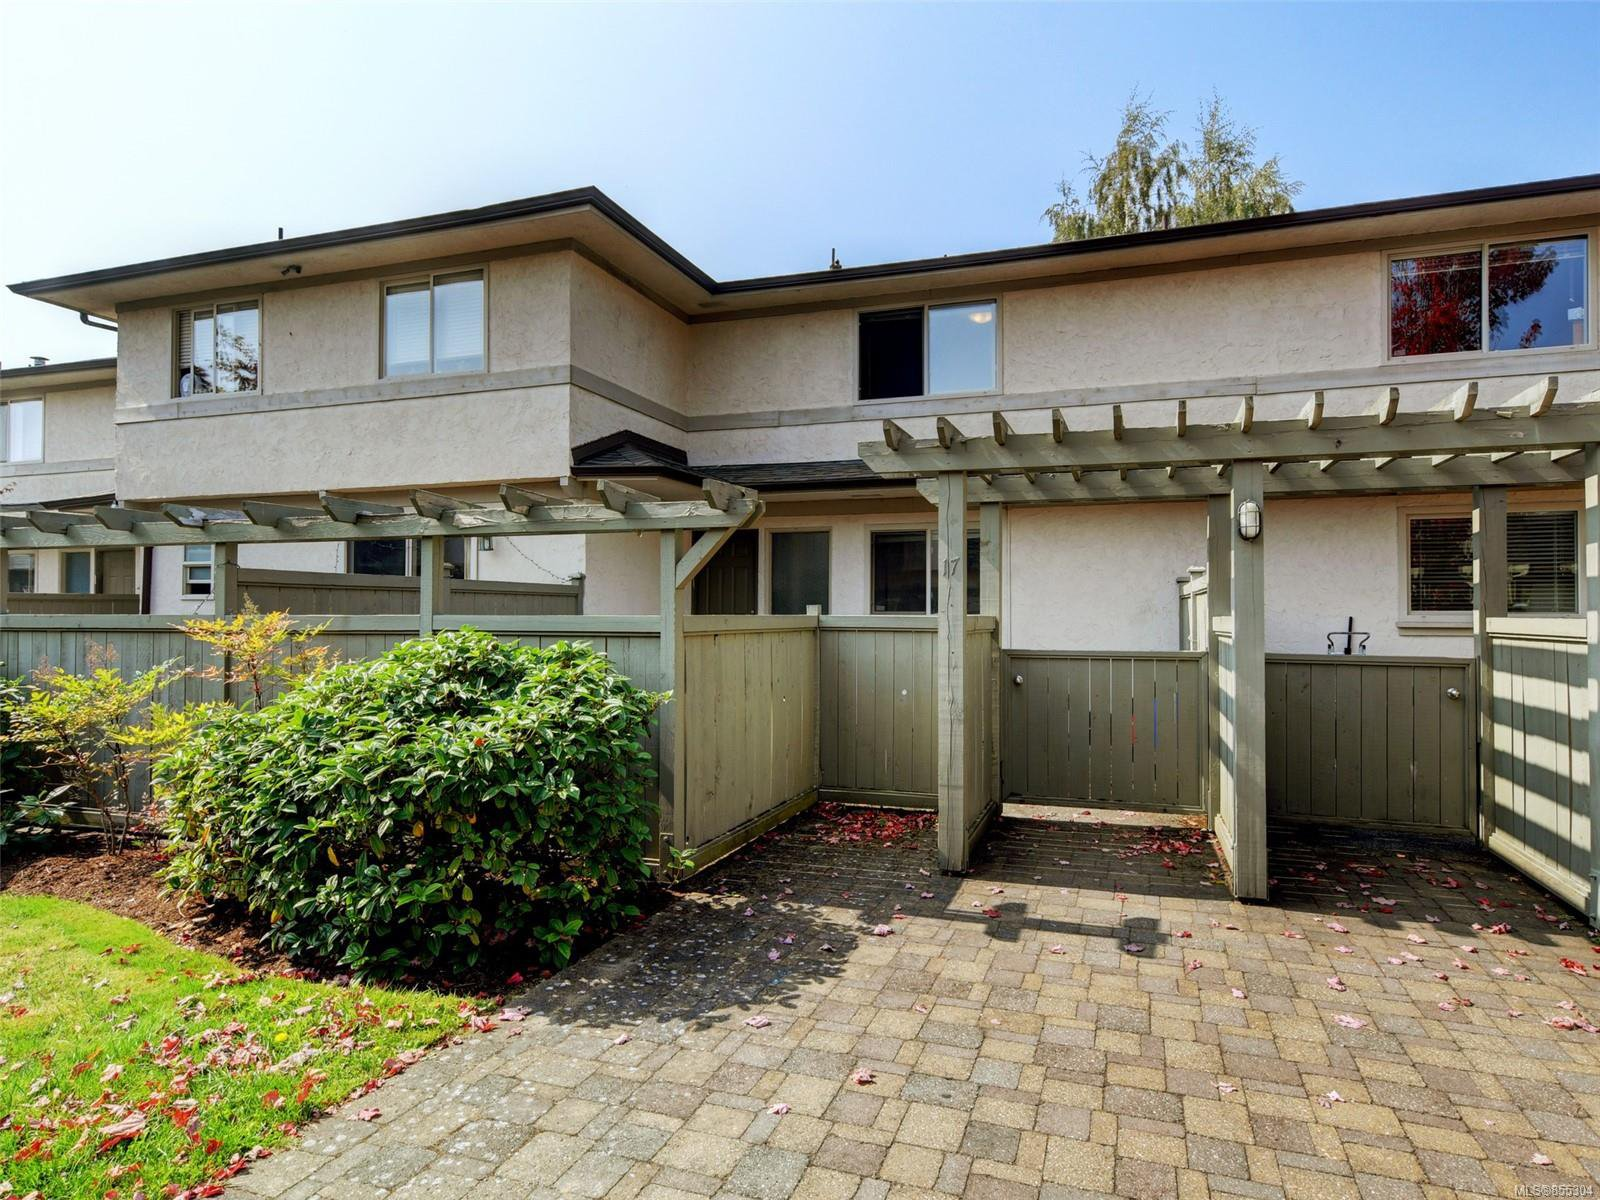 Main Photo: 17 4061 Larchwood Dr in : SE Lambrick Park Row/Townhouse for sale (Saanich East)  : MLS®# 855304